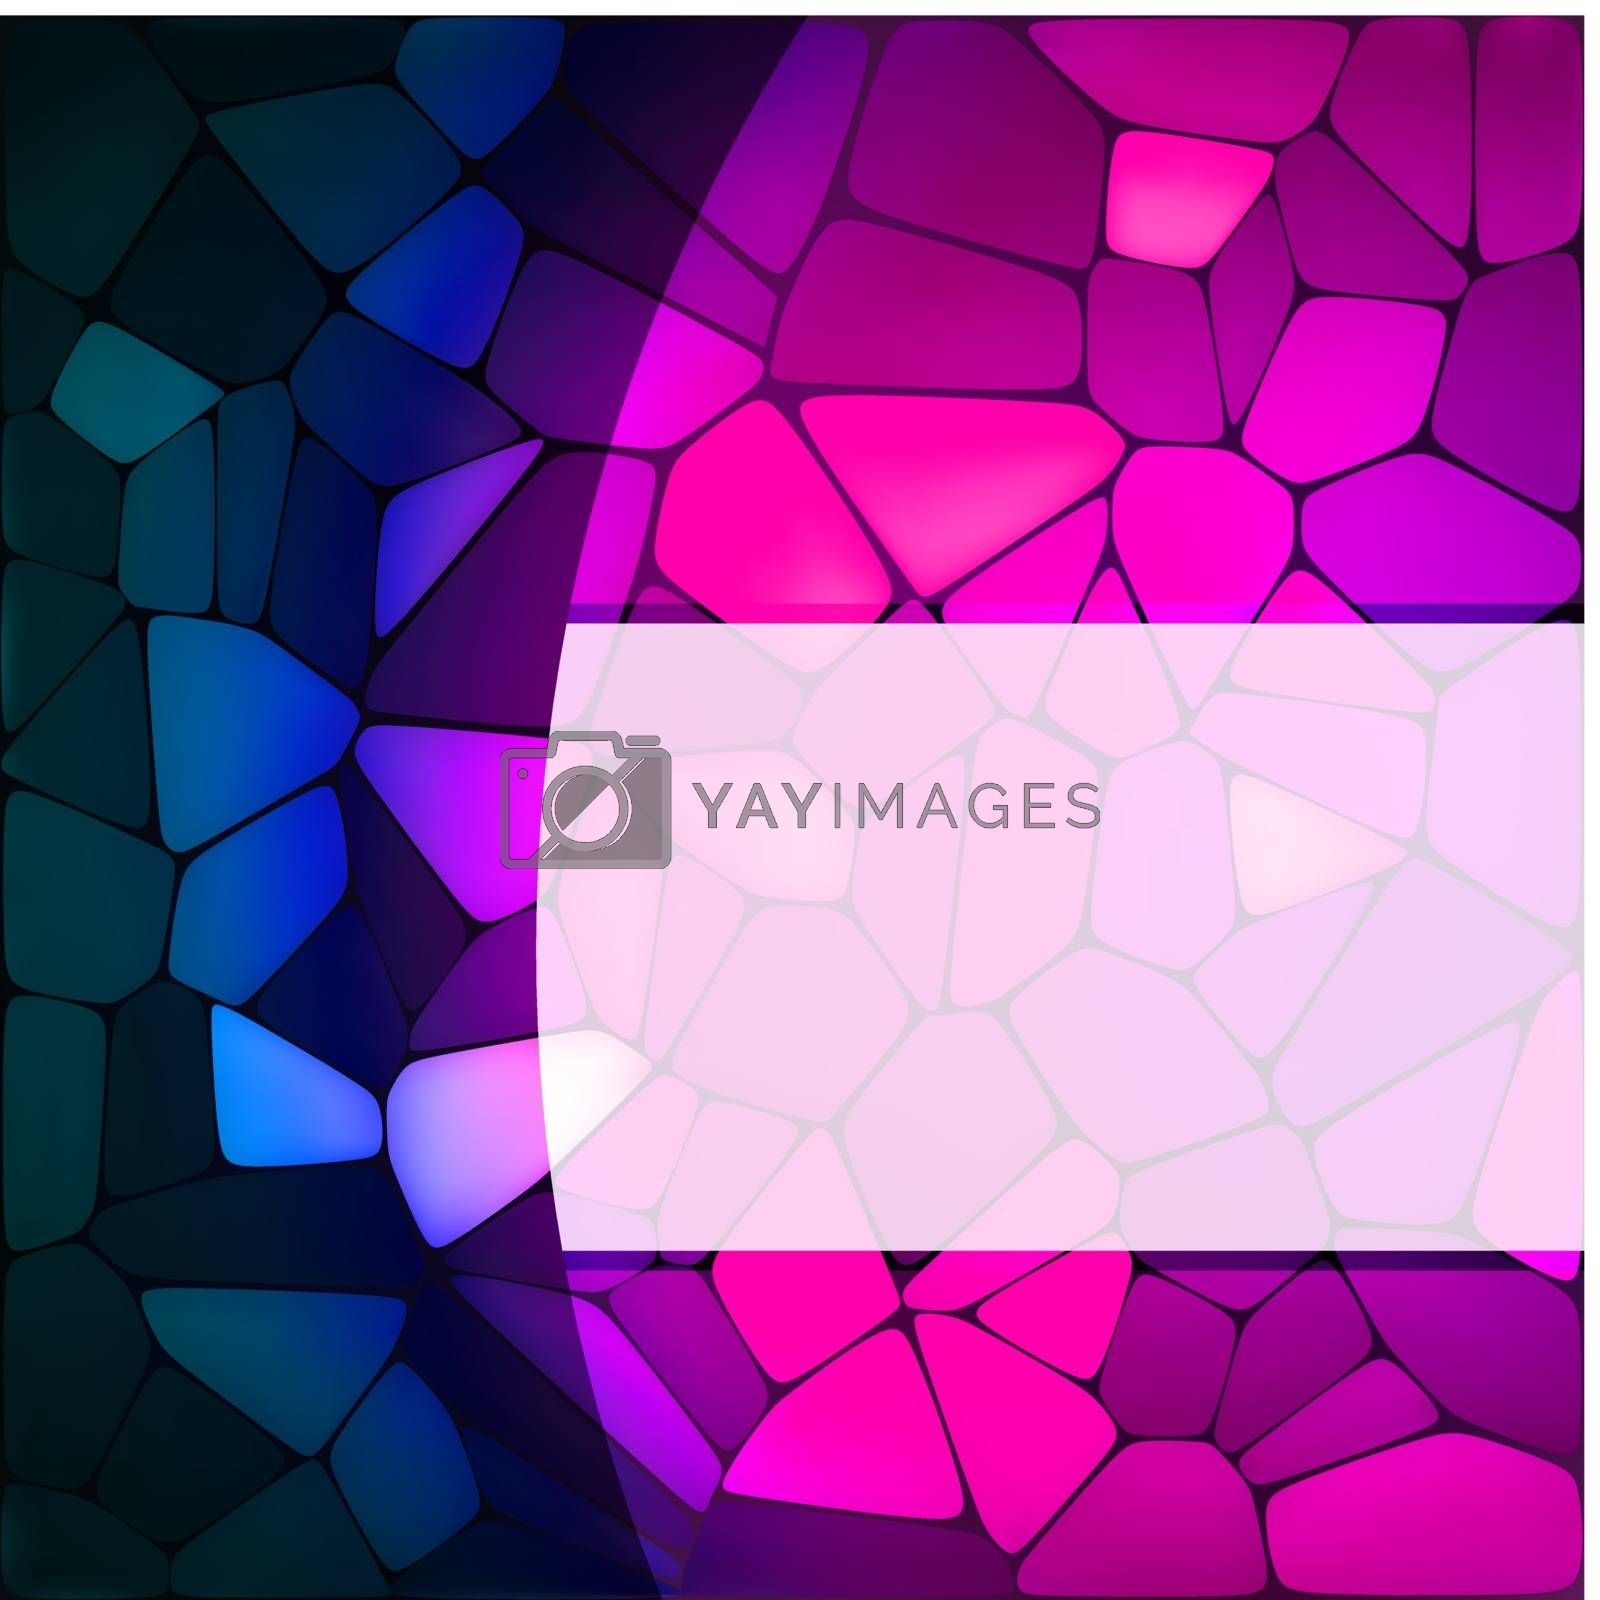 Stained glass design template. EPS 8 vector file included